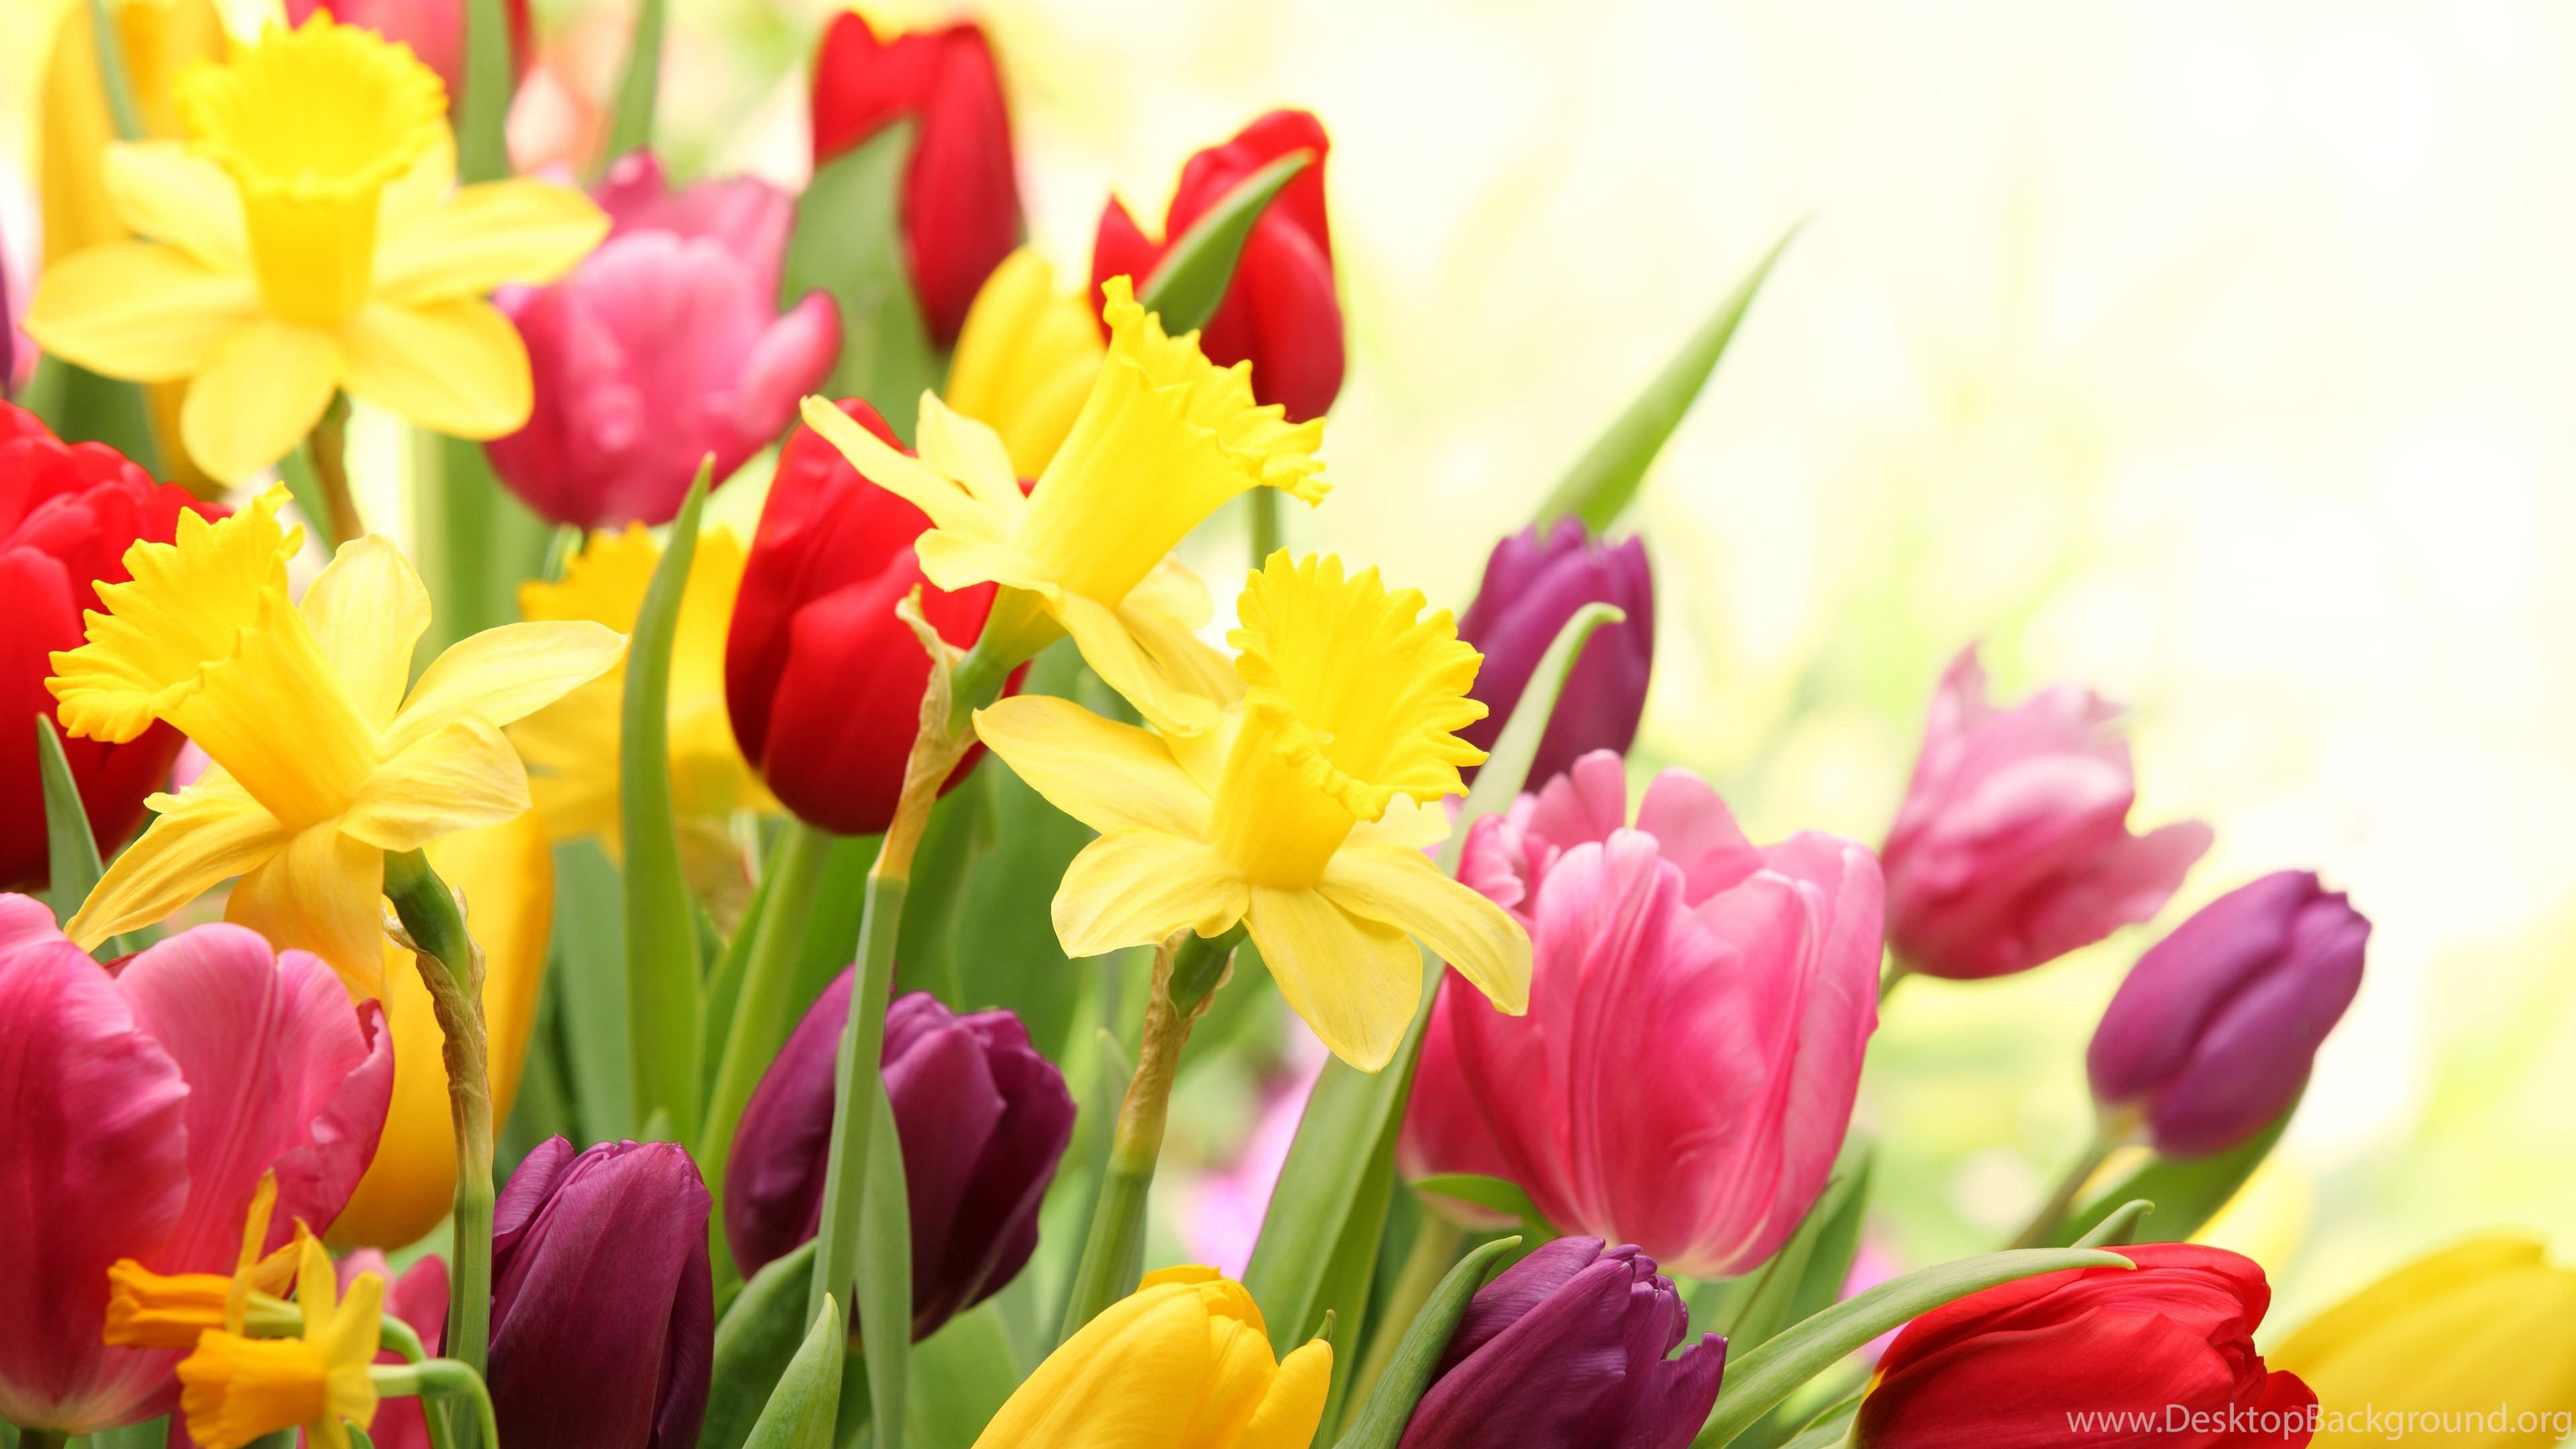 Desktop Wallpaper Spring Flowers (60+ Images